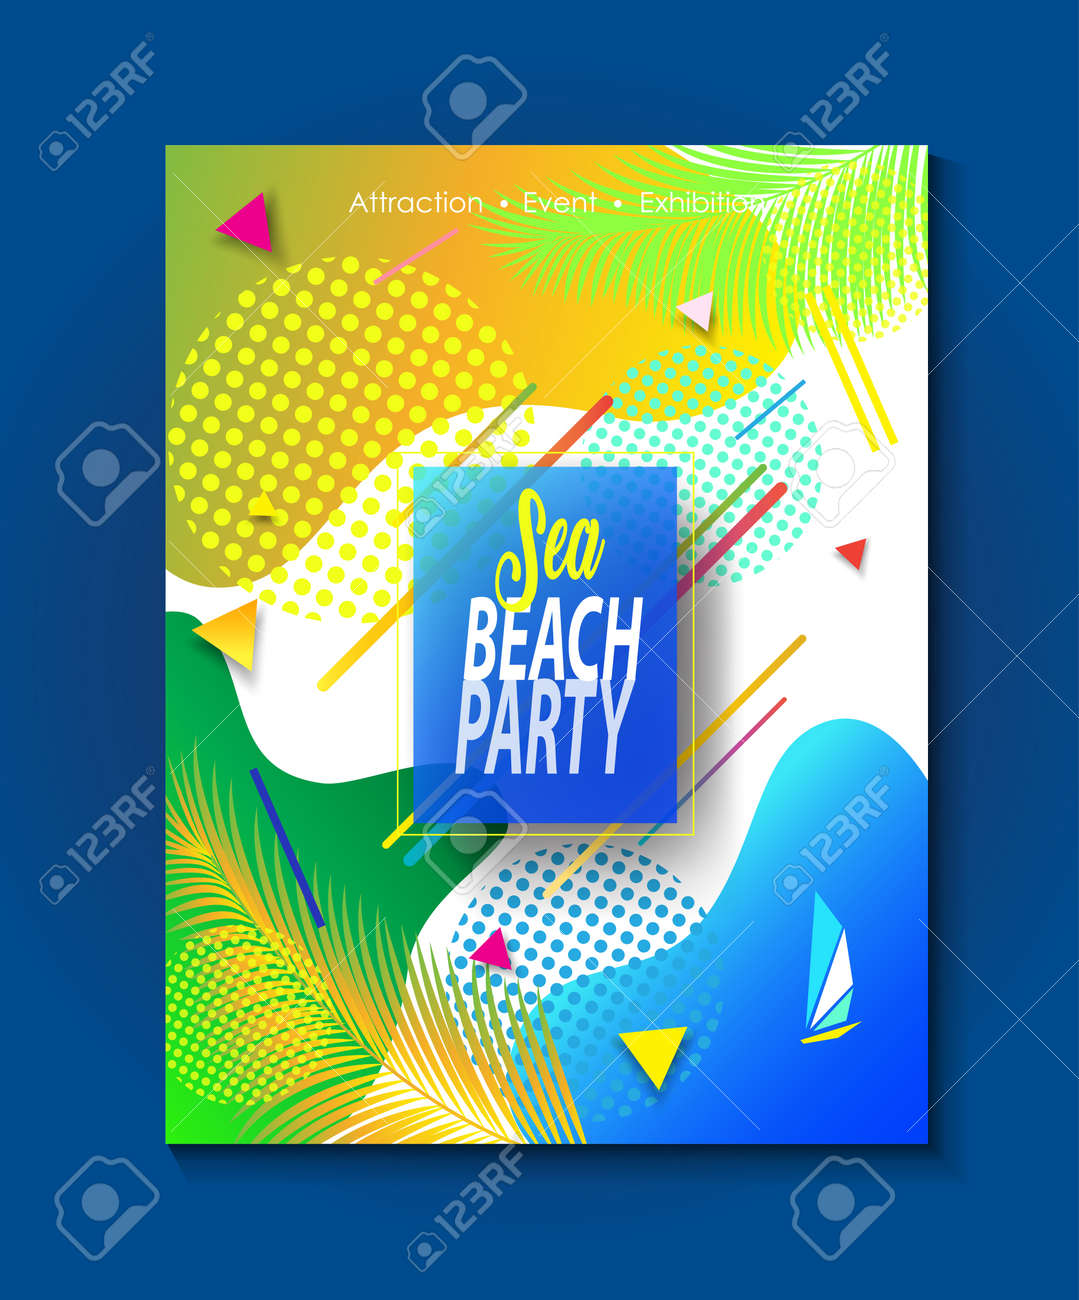 Sea Beach Party Invitation Tropical Palm Tree Leaves Abstract